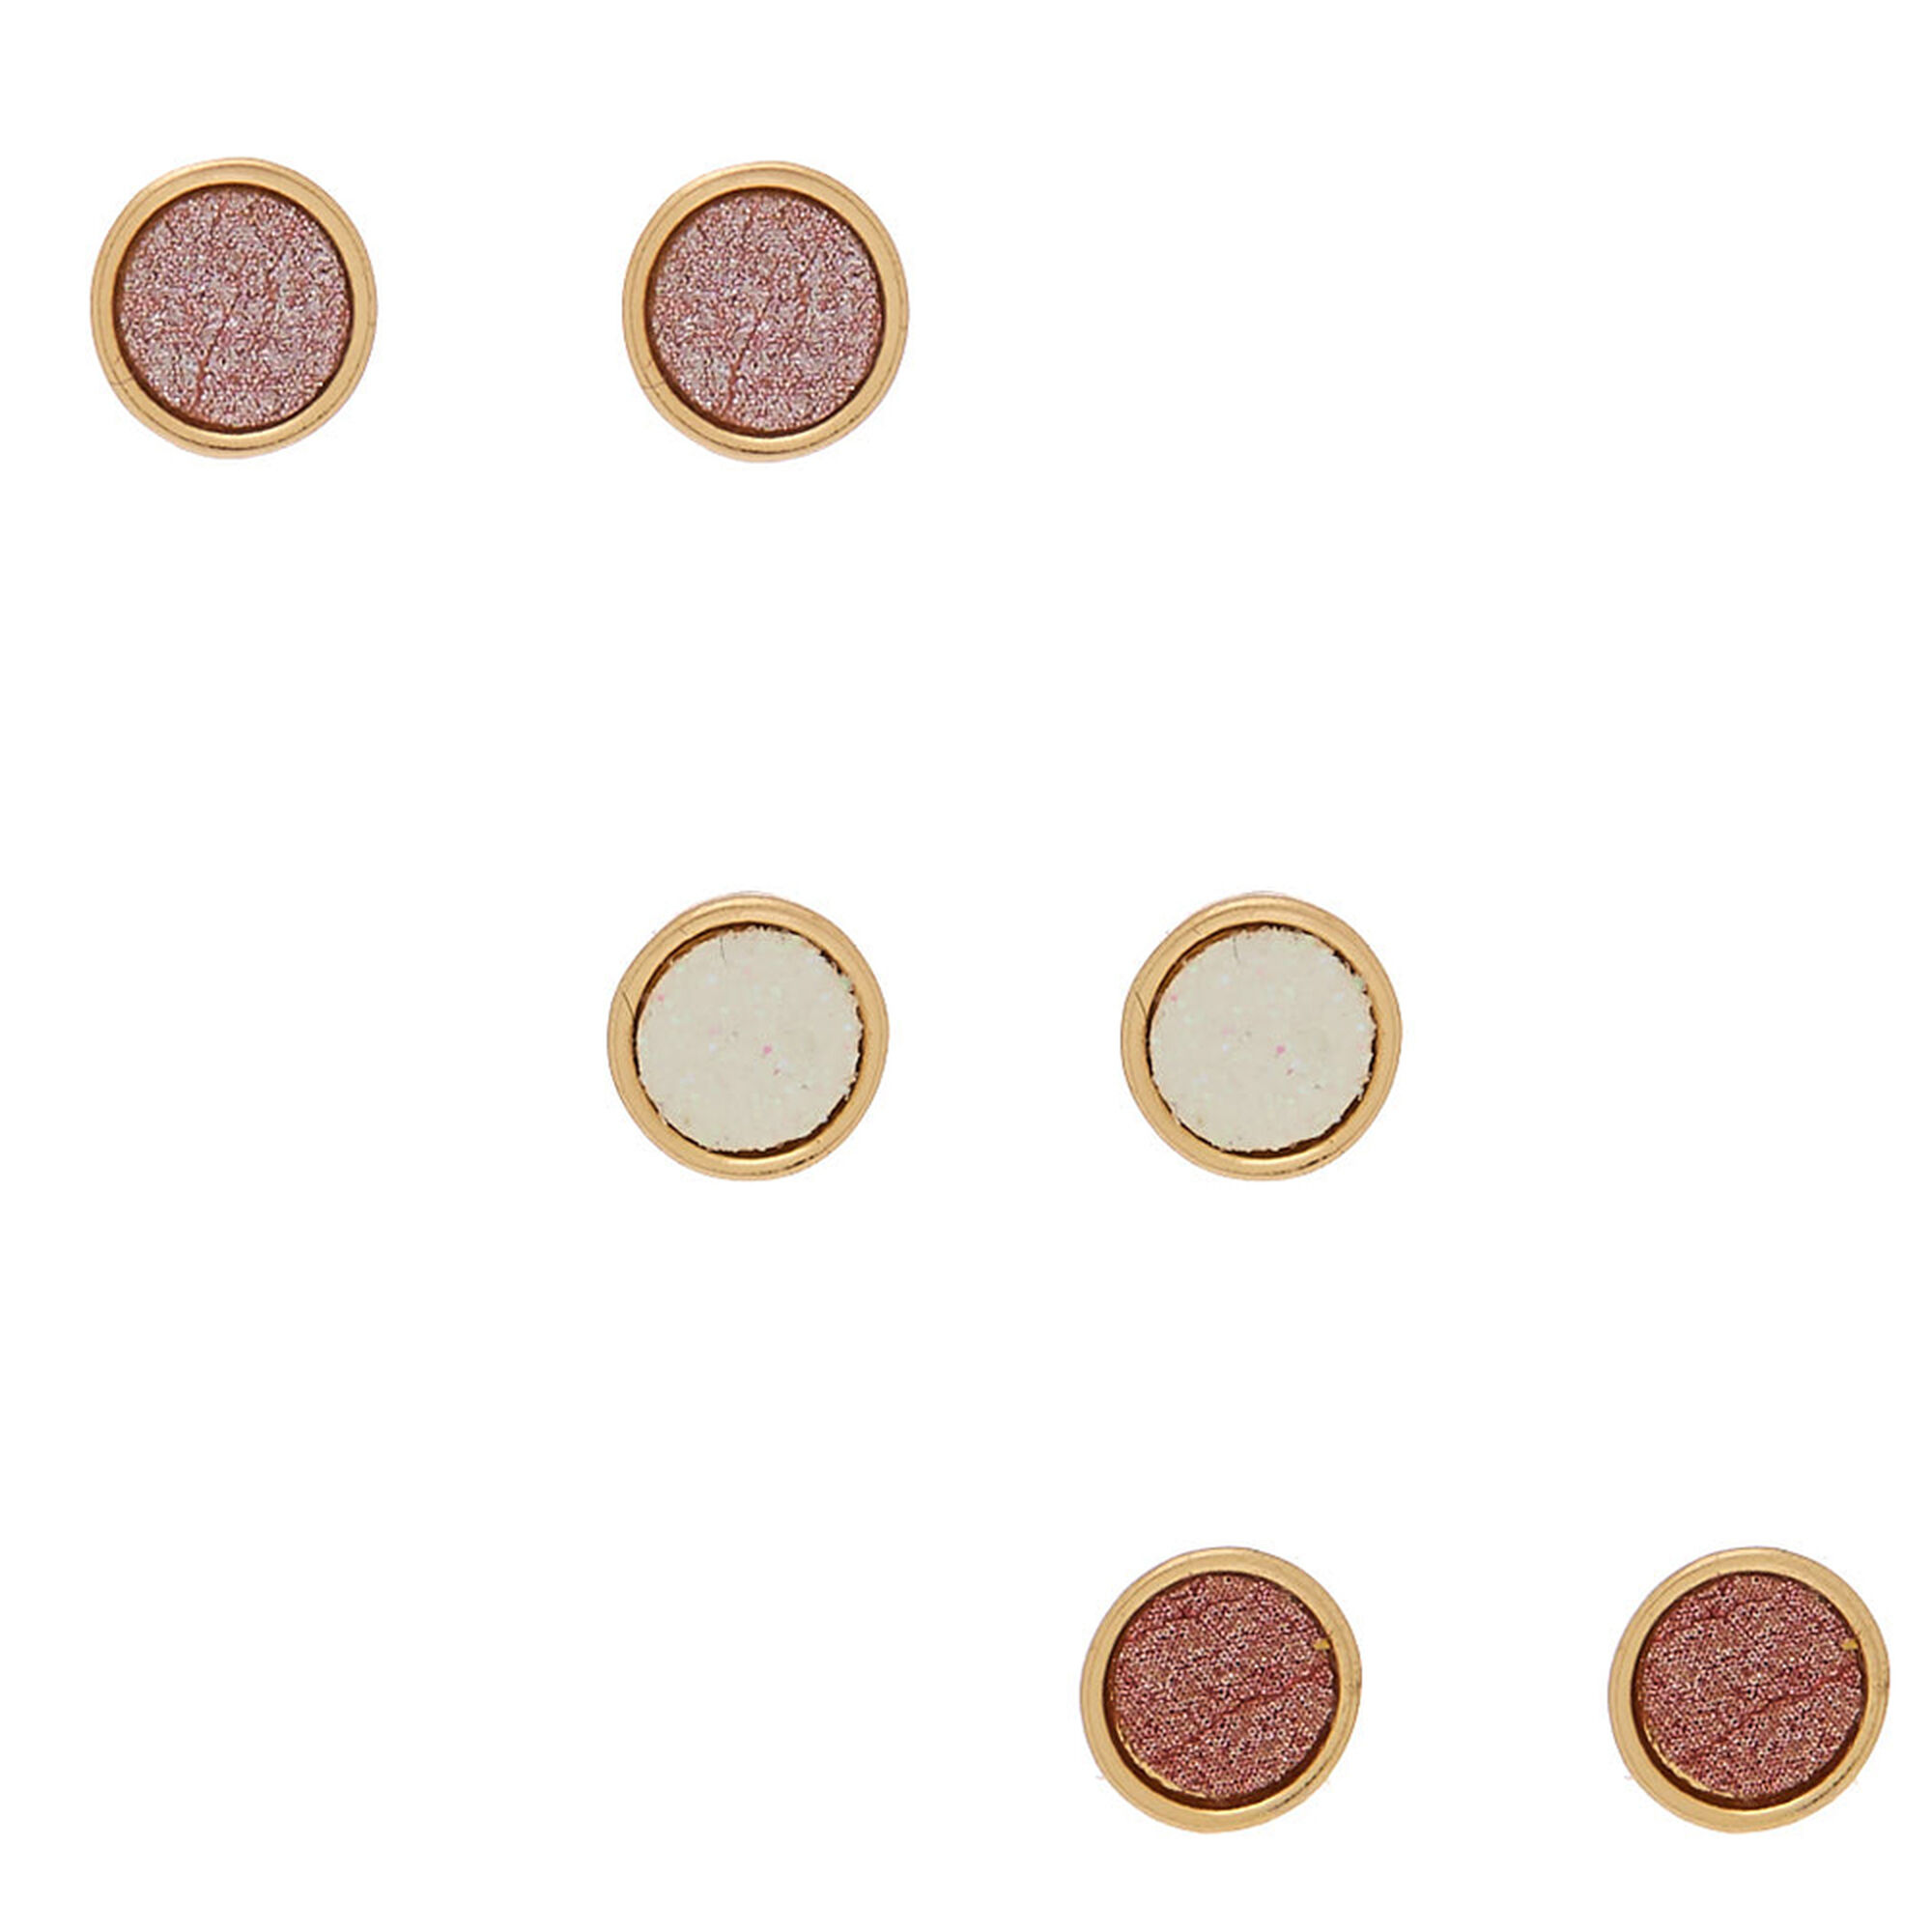 f3d4b5332 Rose Gold Button Stud Earrings - 3 Pack | Claire's